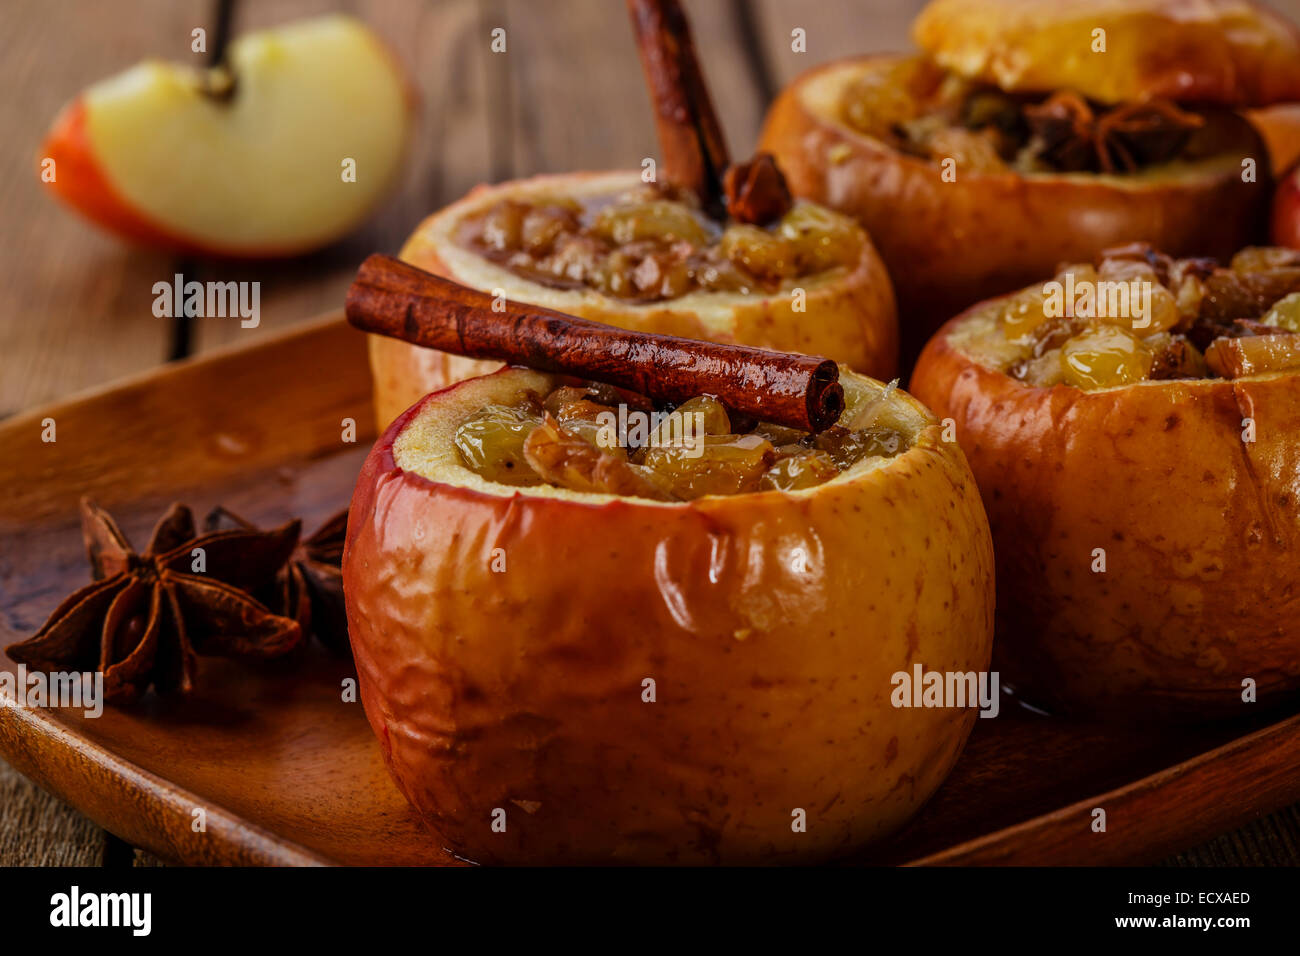 baked apples with raisins and cinnamon - Stock Image